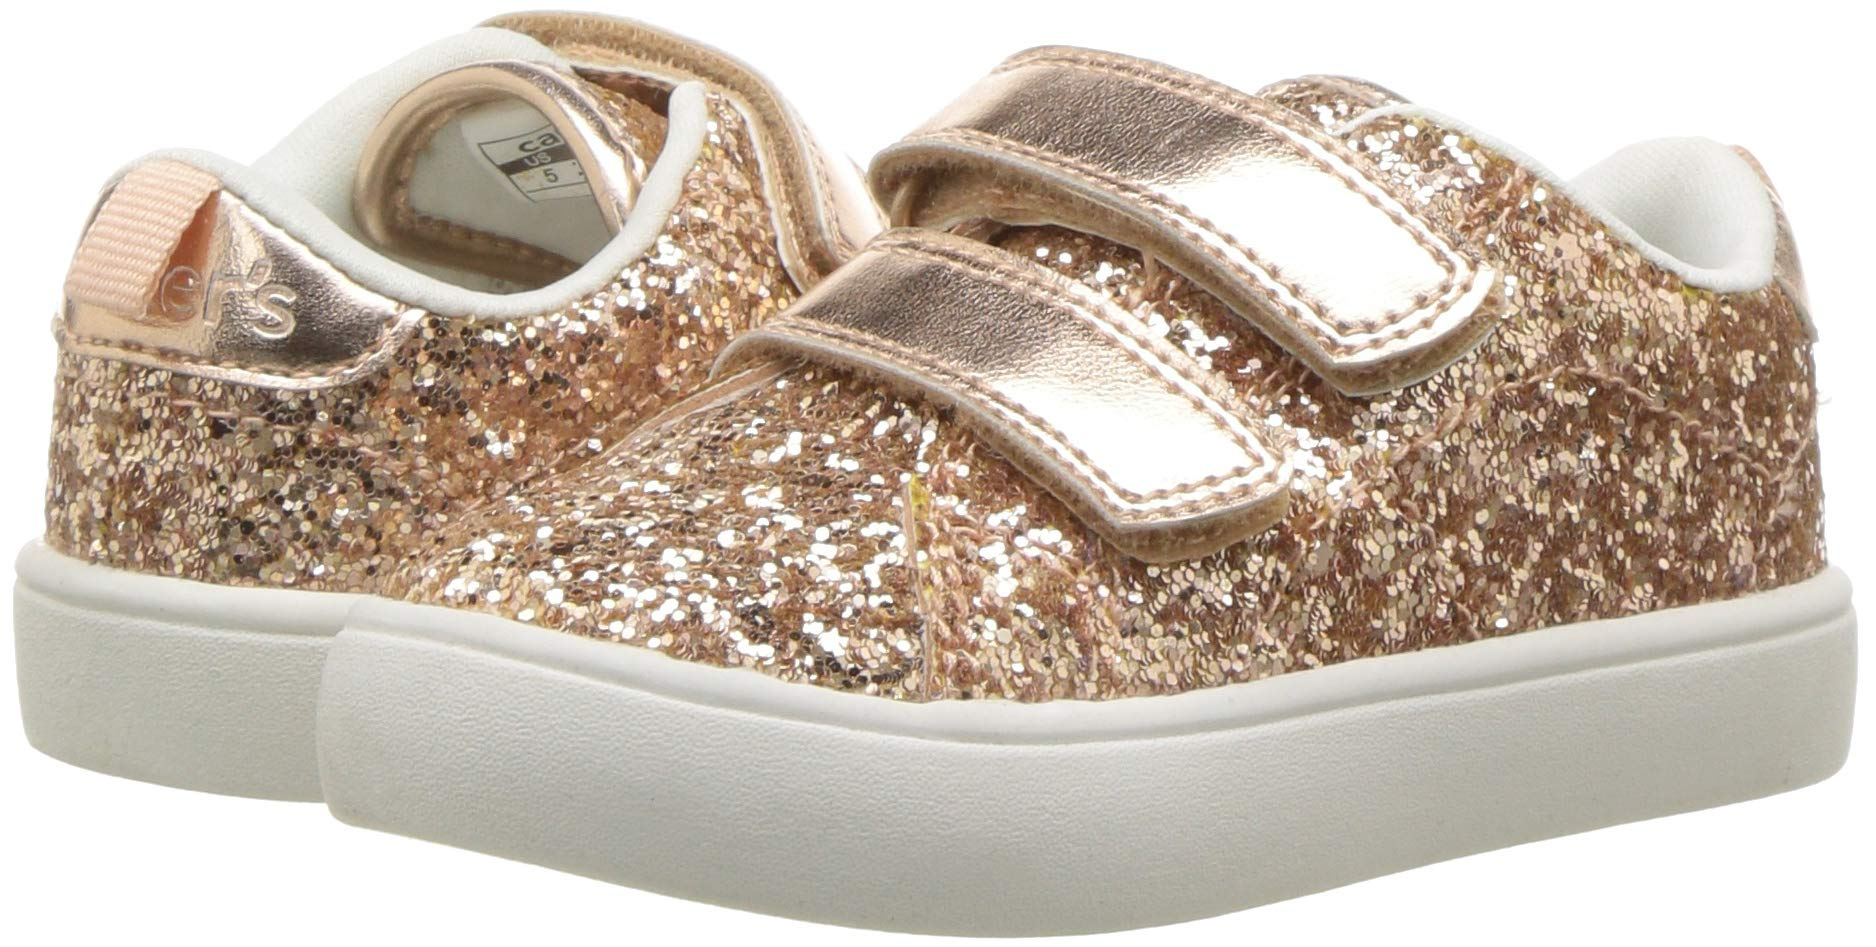 carter's Girls' Andee2 Rosegold Casual Sneaker, Rose Gold, 11 M US Little Kid by Carter's (Image #6)